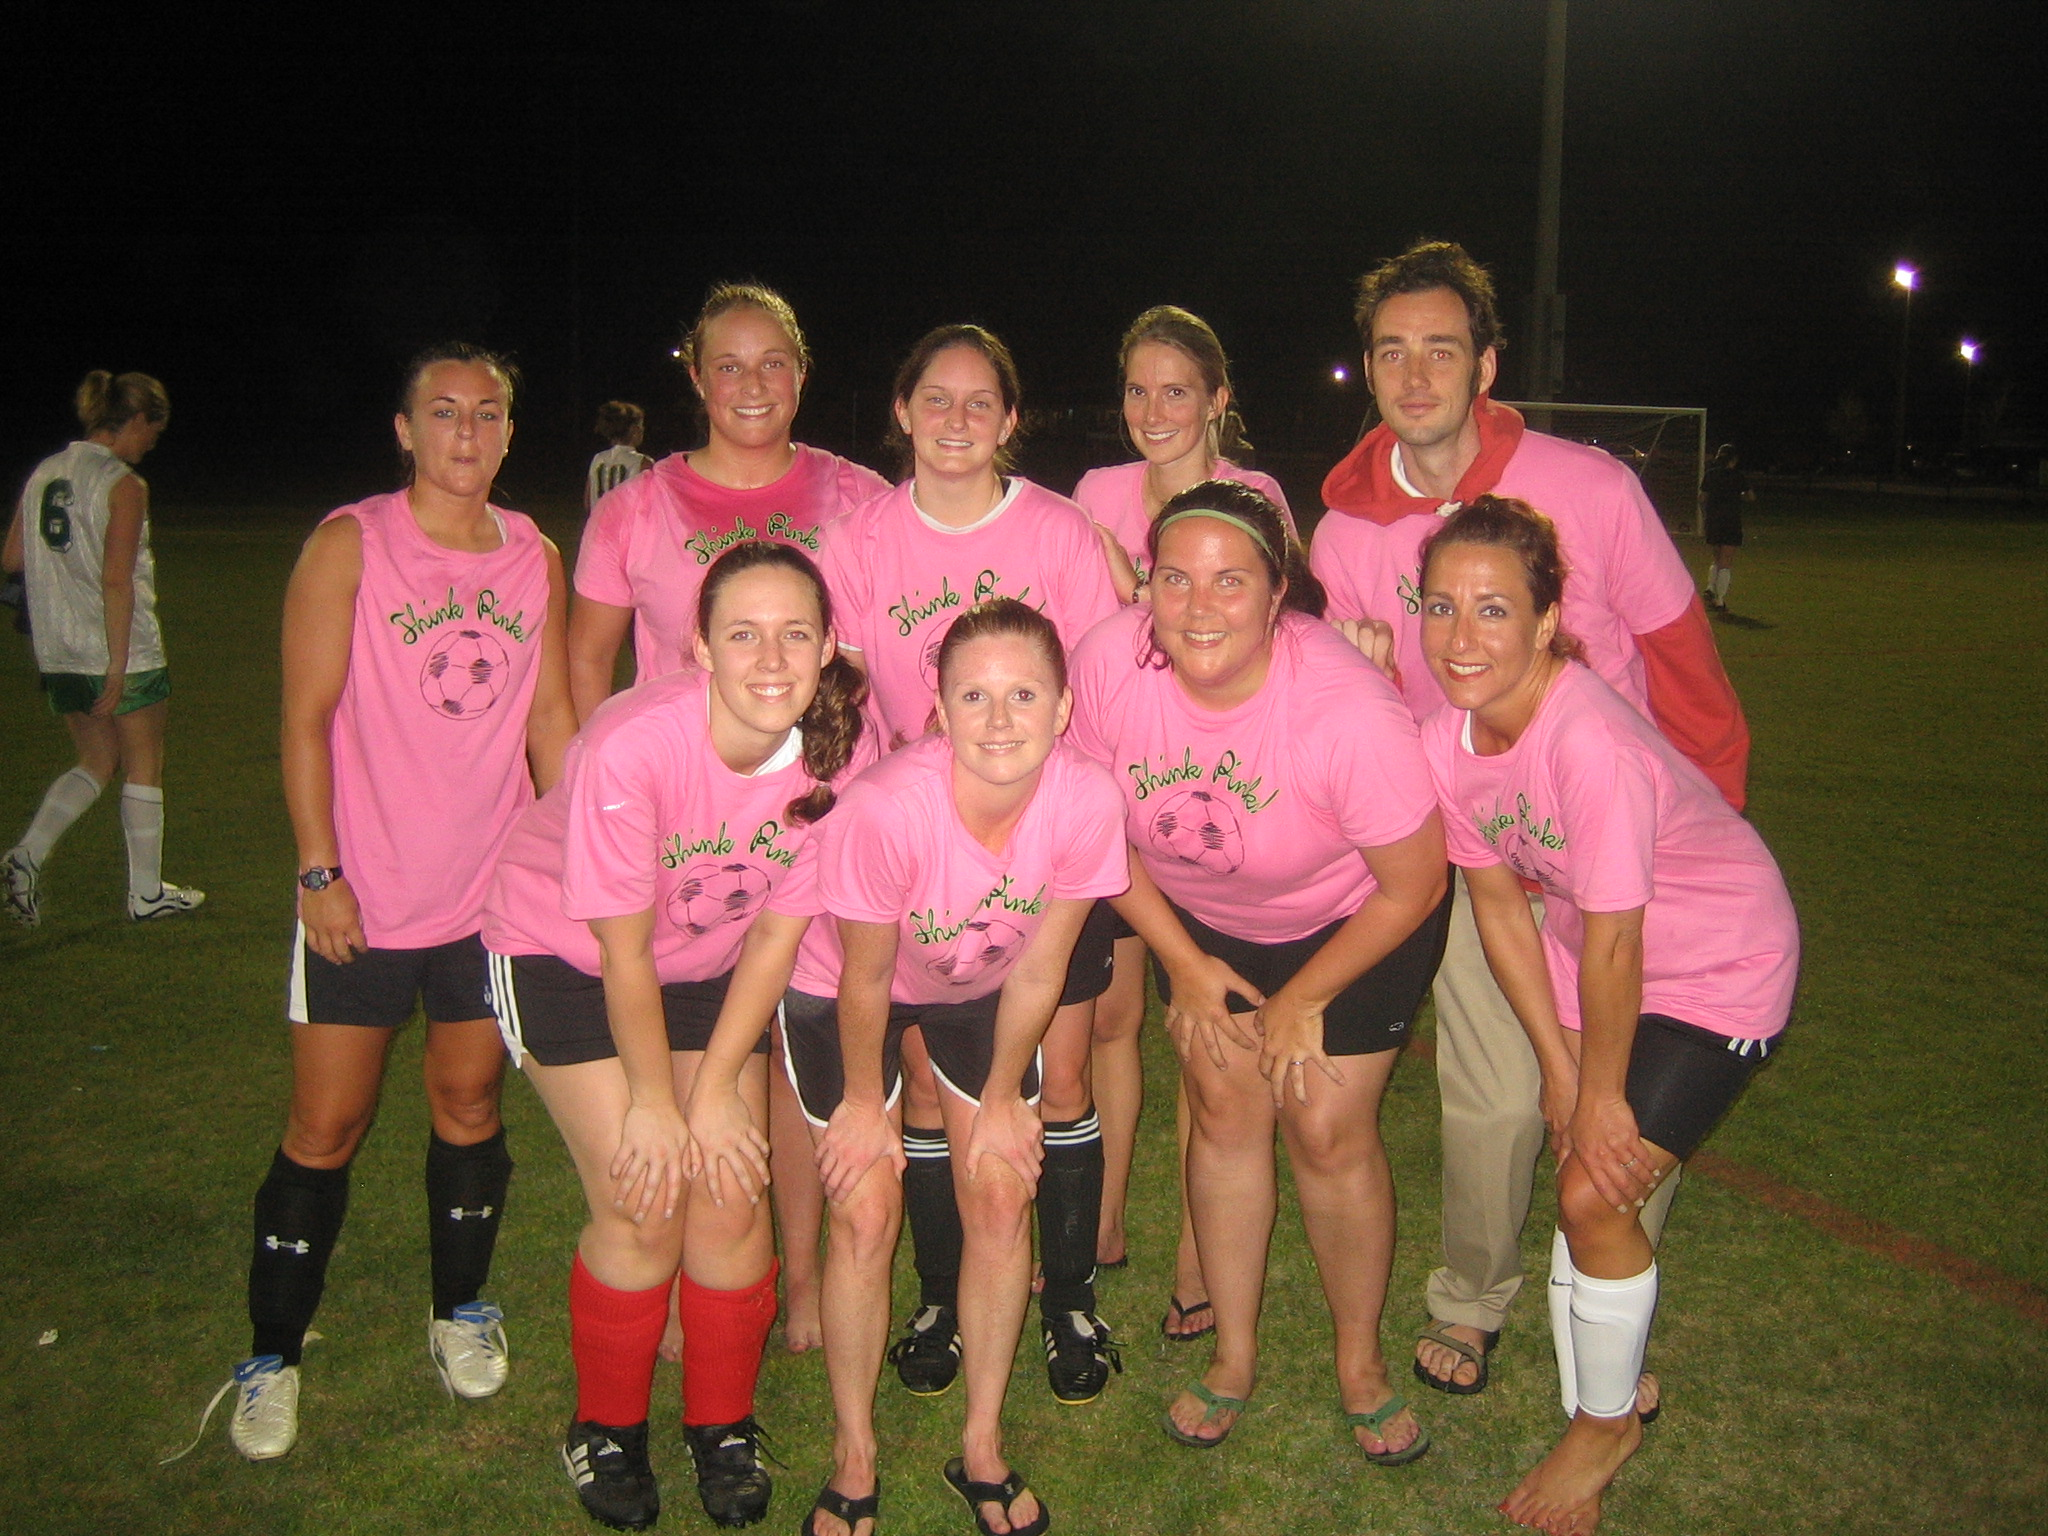 bce97acfd Custom T-Shirts for Our Soccer Team With Our Pink Jerseys! - Shirt ...